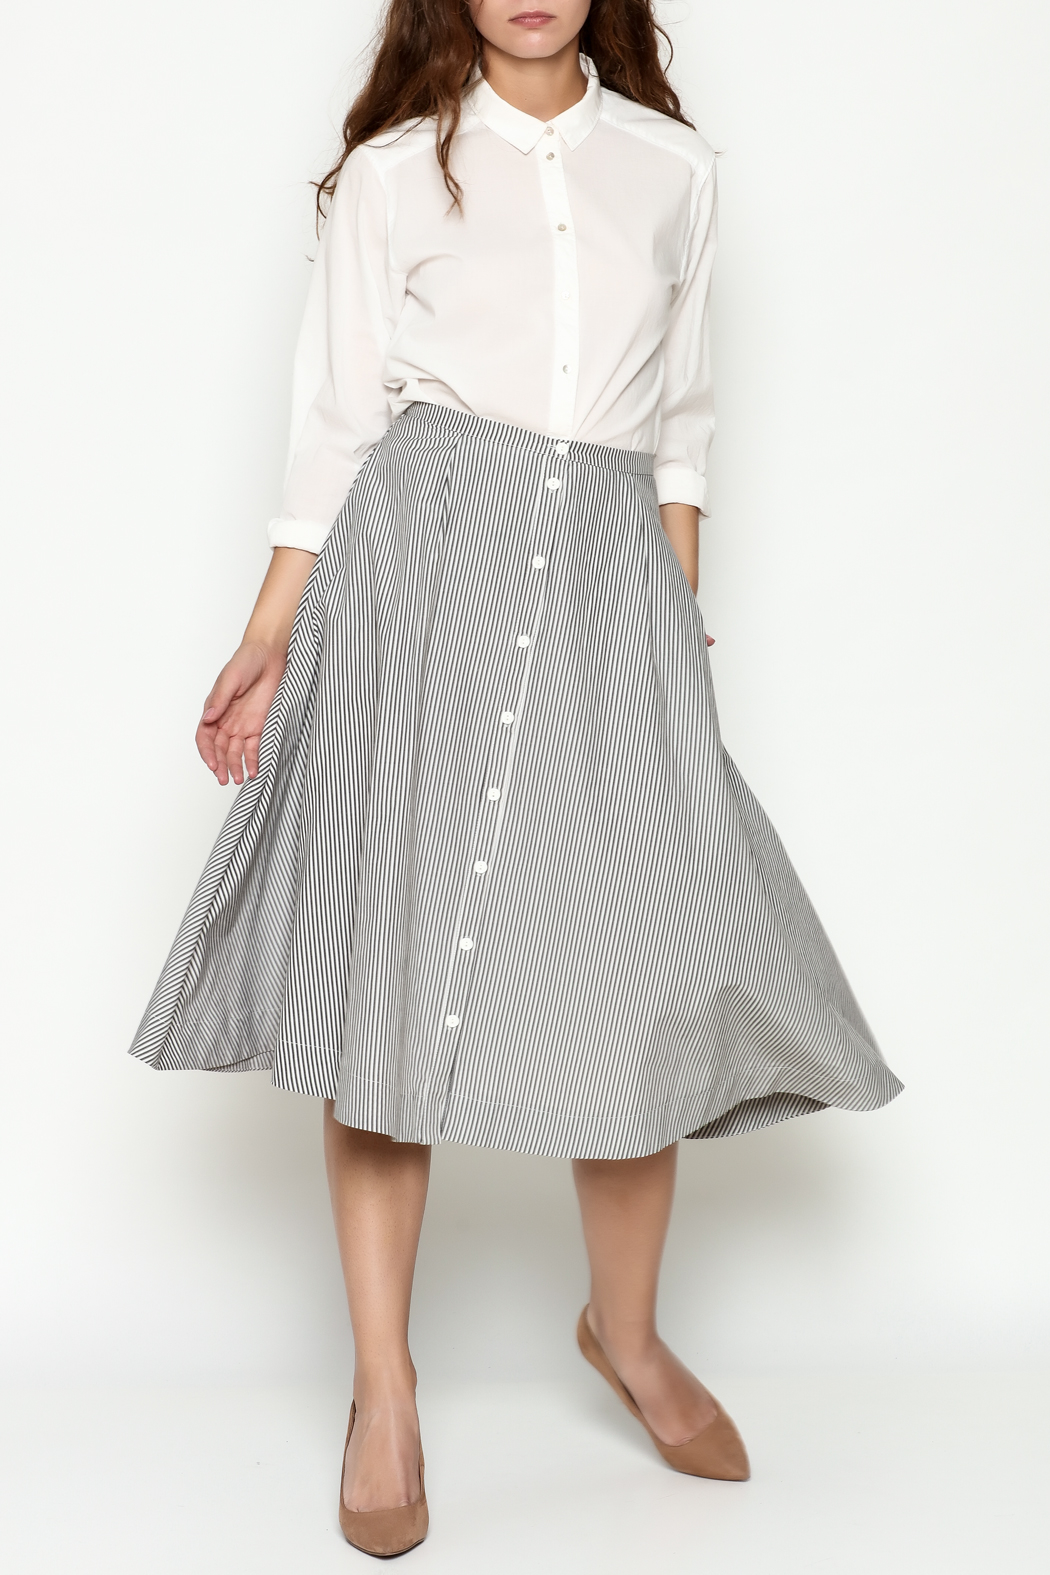 Marvy Fashion Striped Skirt - Side Cropped Image